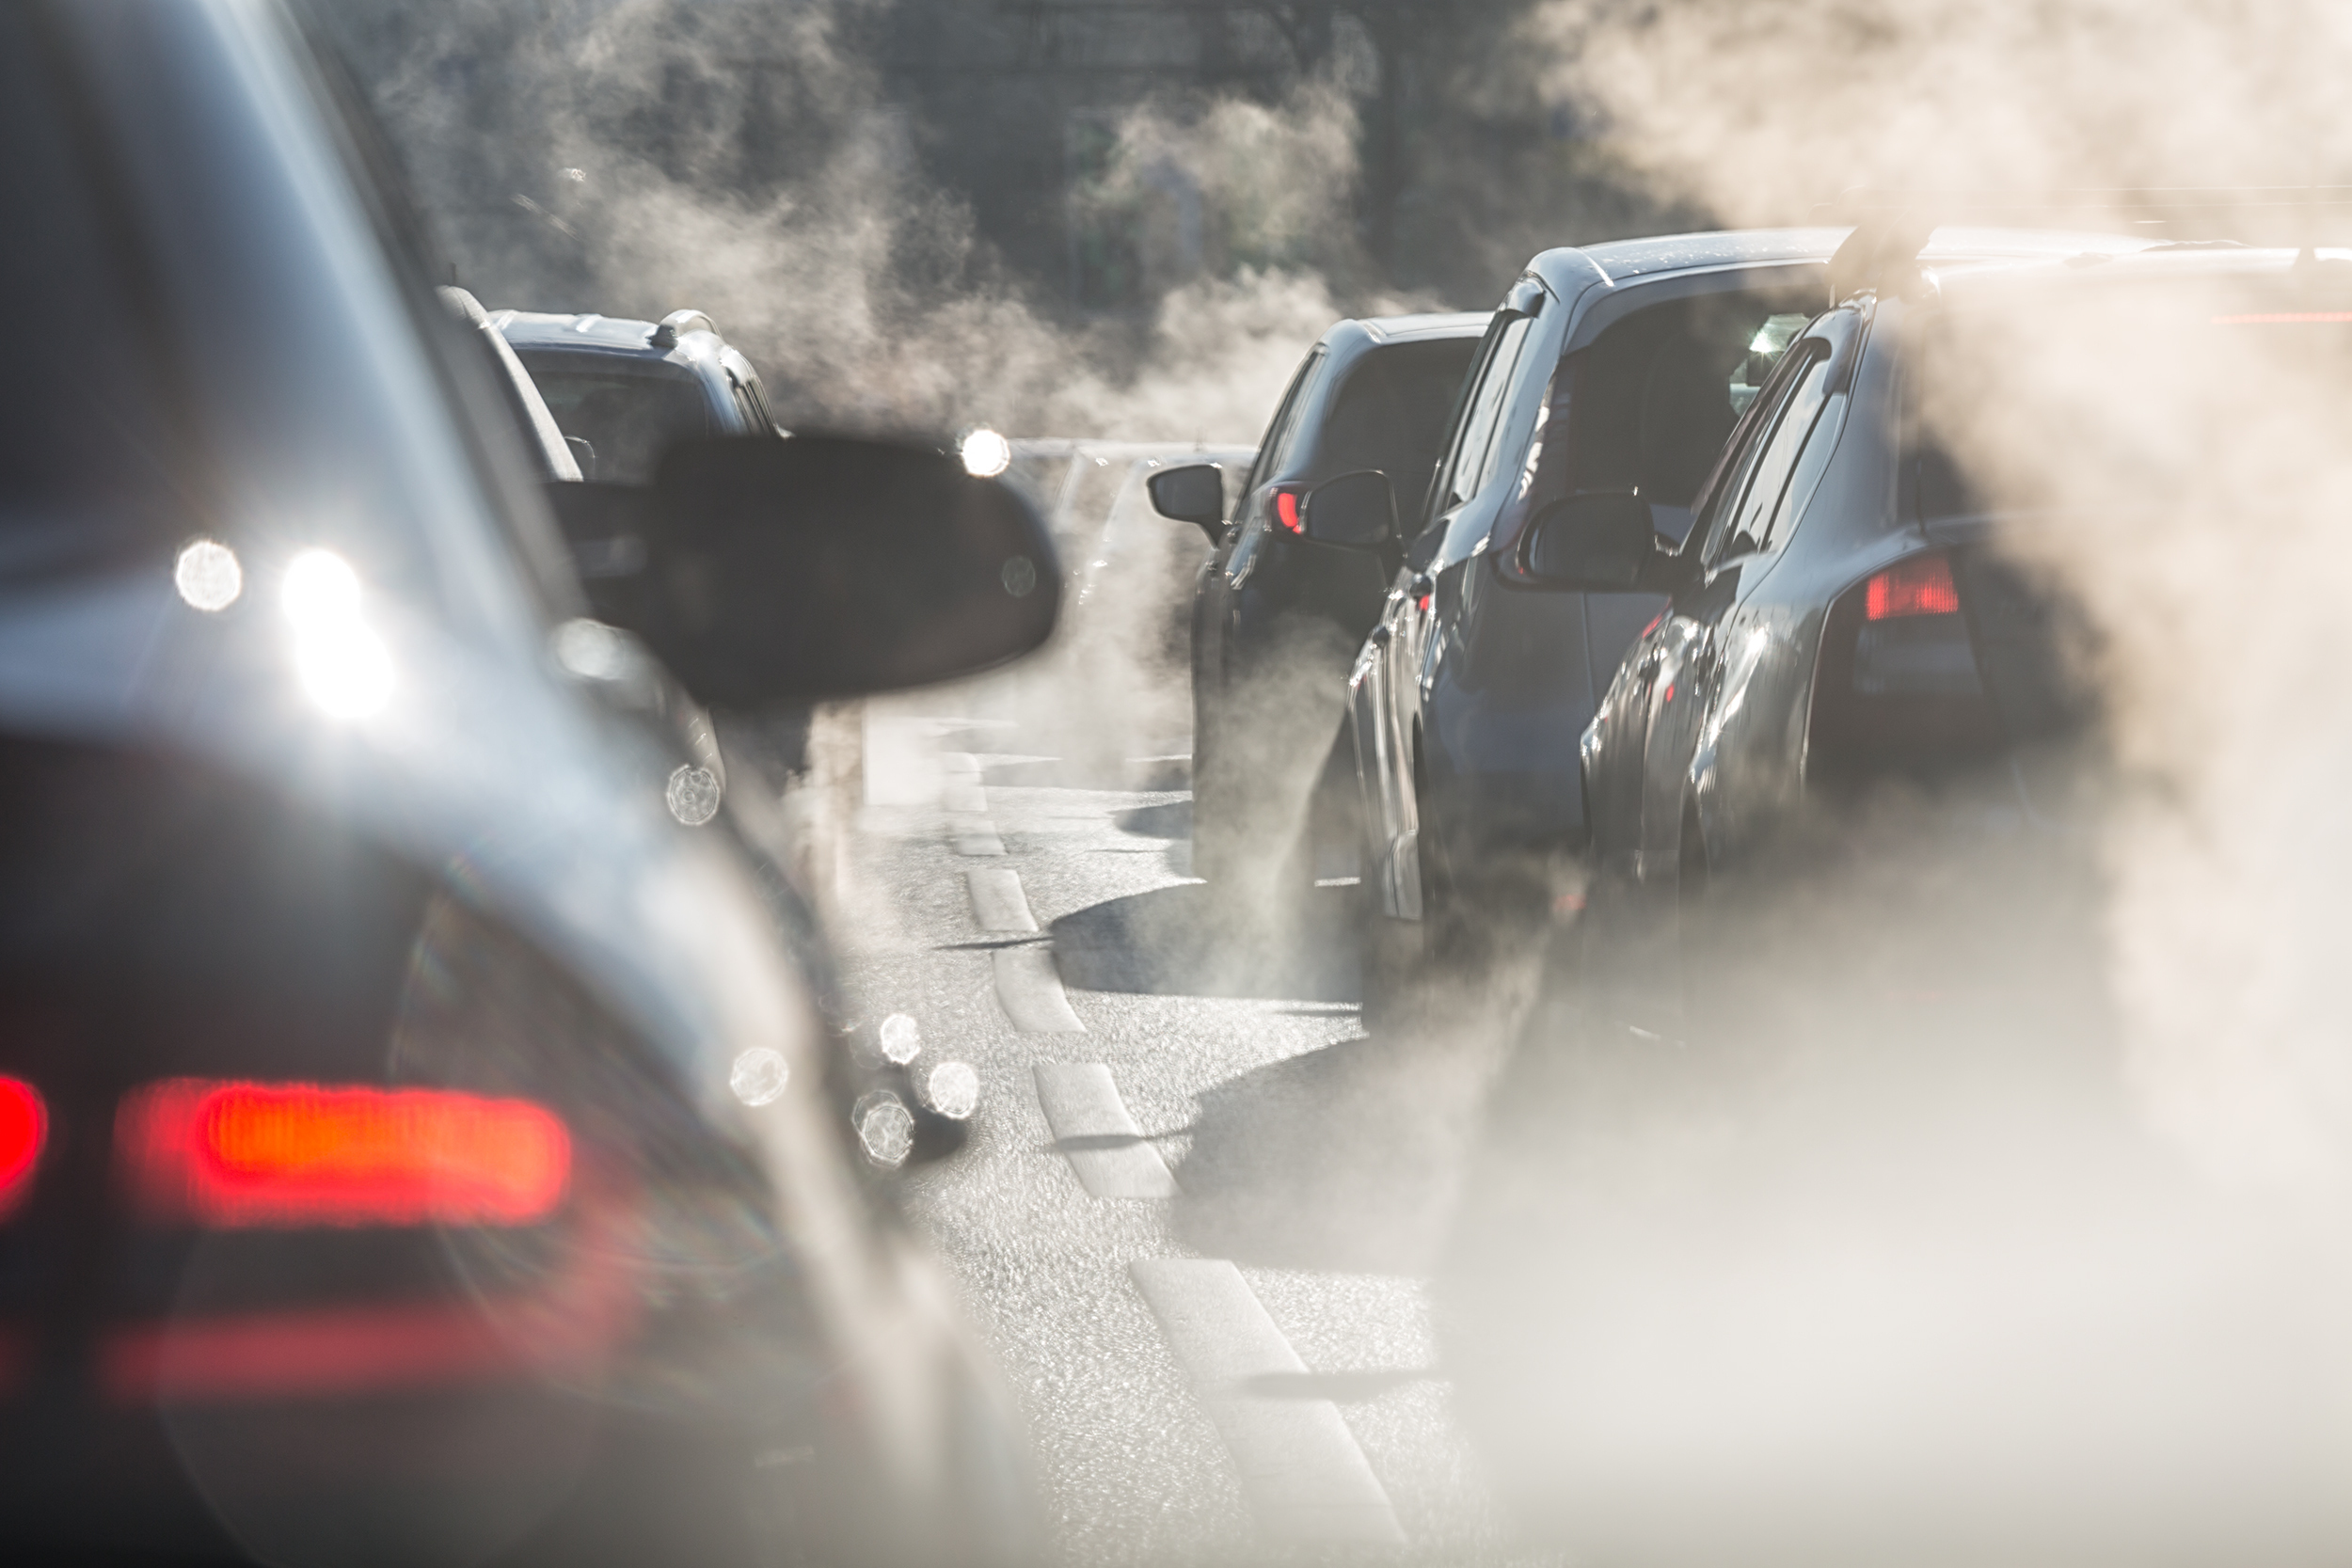 The Environmental Protection Agency (EPA) may soon announce a new plan to rollback automobile fuel economy and emissions standards.